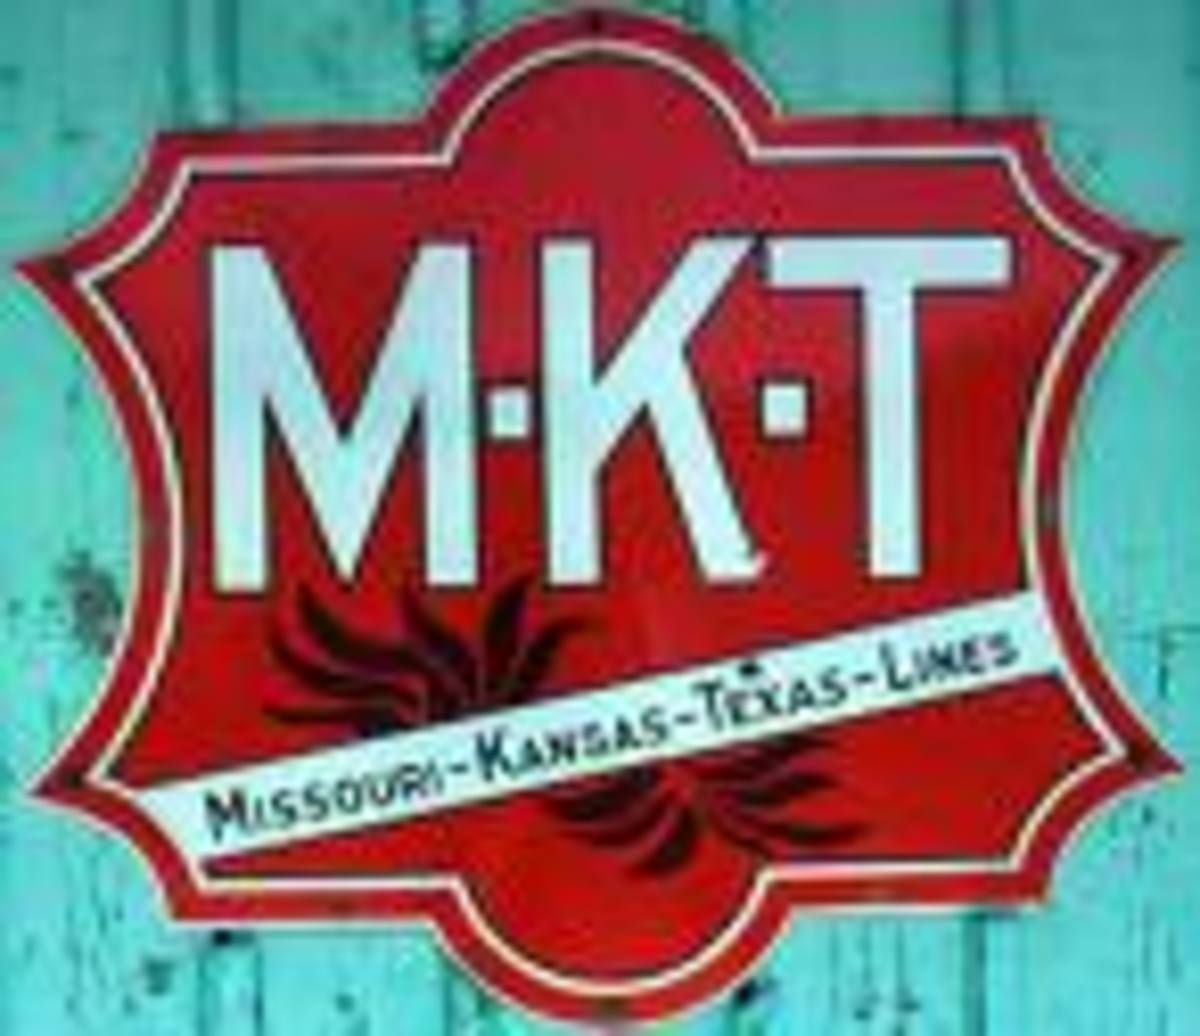 MKT (Missouri, Kansas, Texas) Railroad also know as Katy Railroad